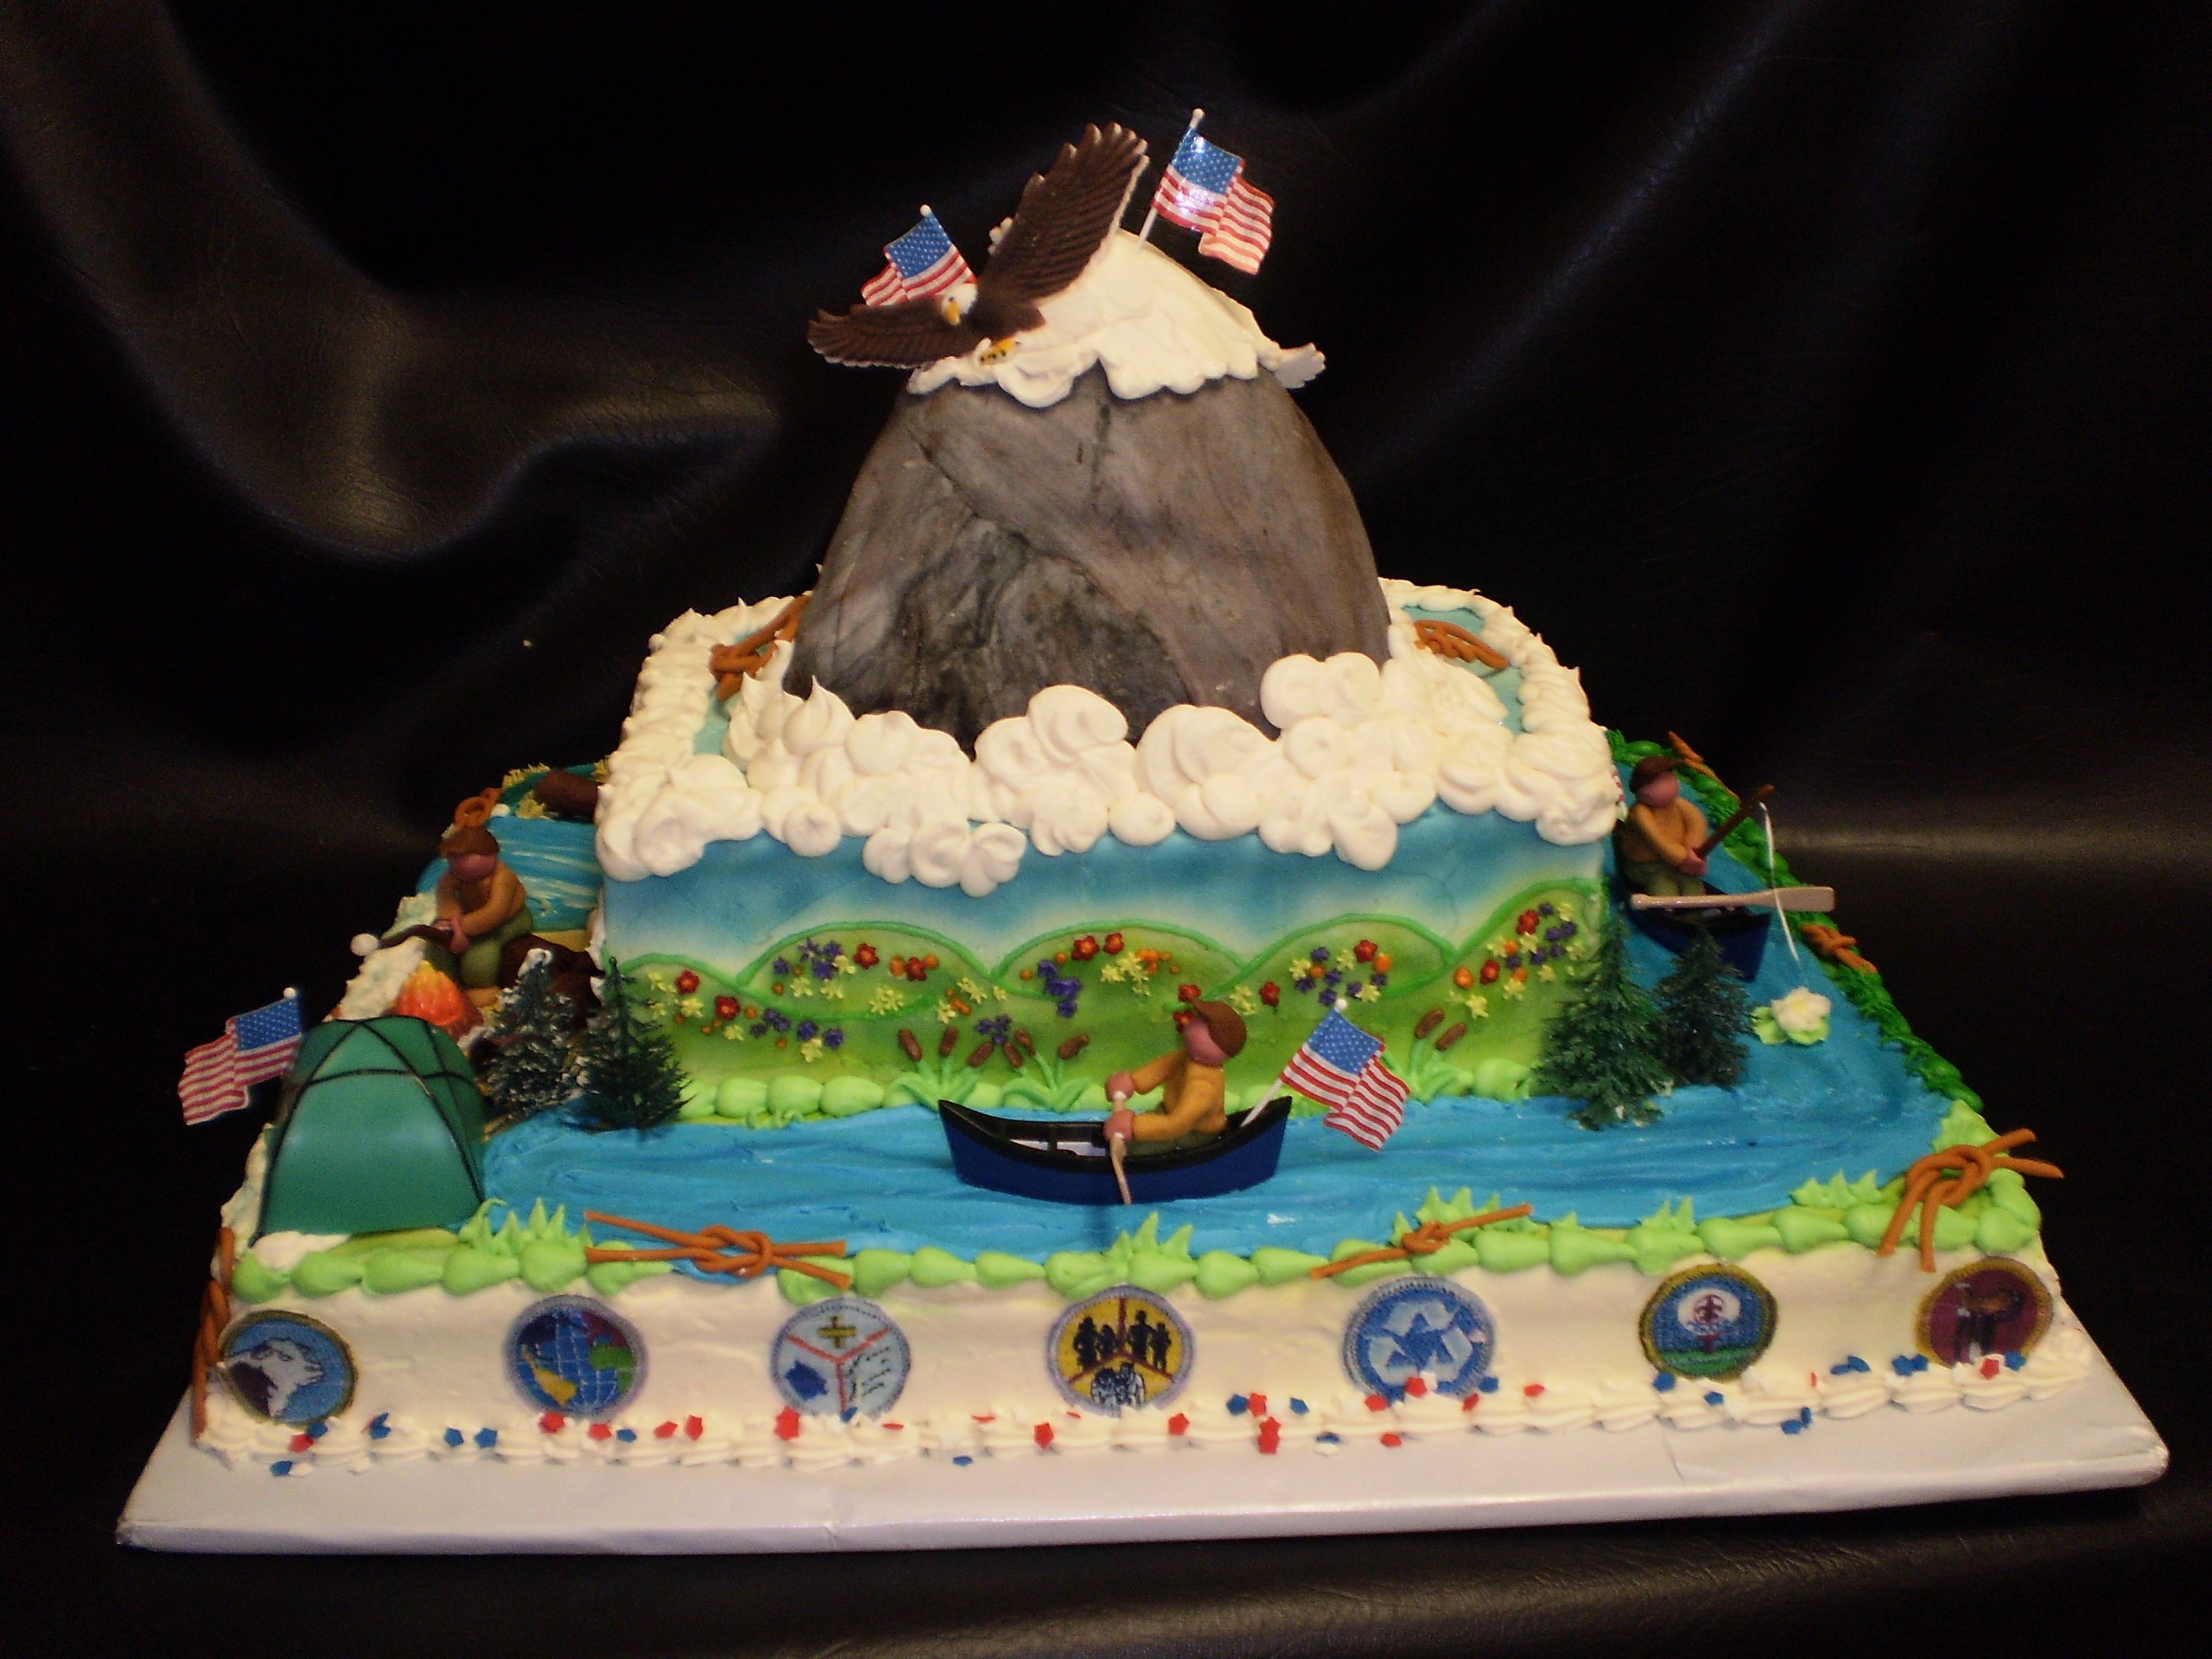 Cake Decorating Ideas For Boy Scouts : Yet another cake Eagle scout ideas Pinterest